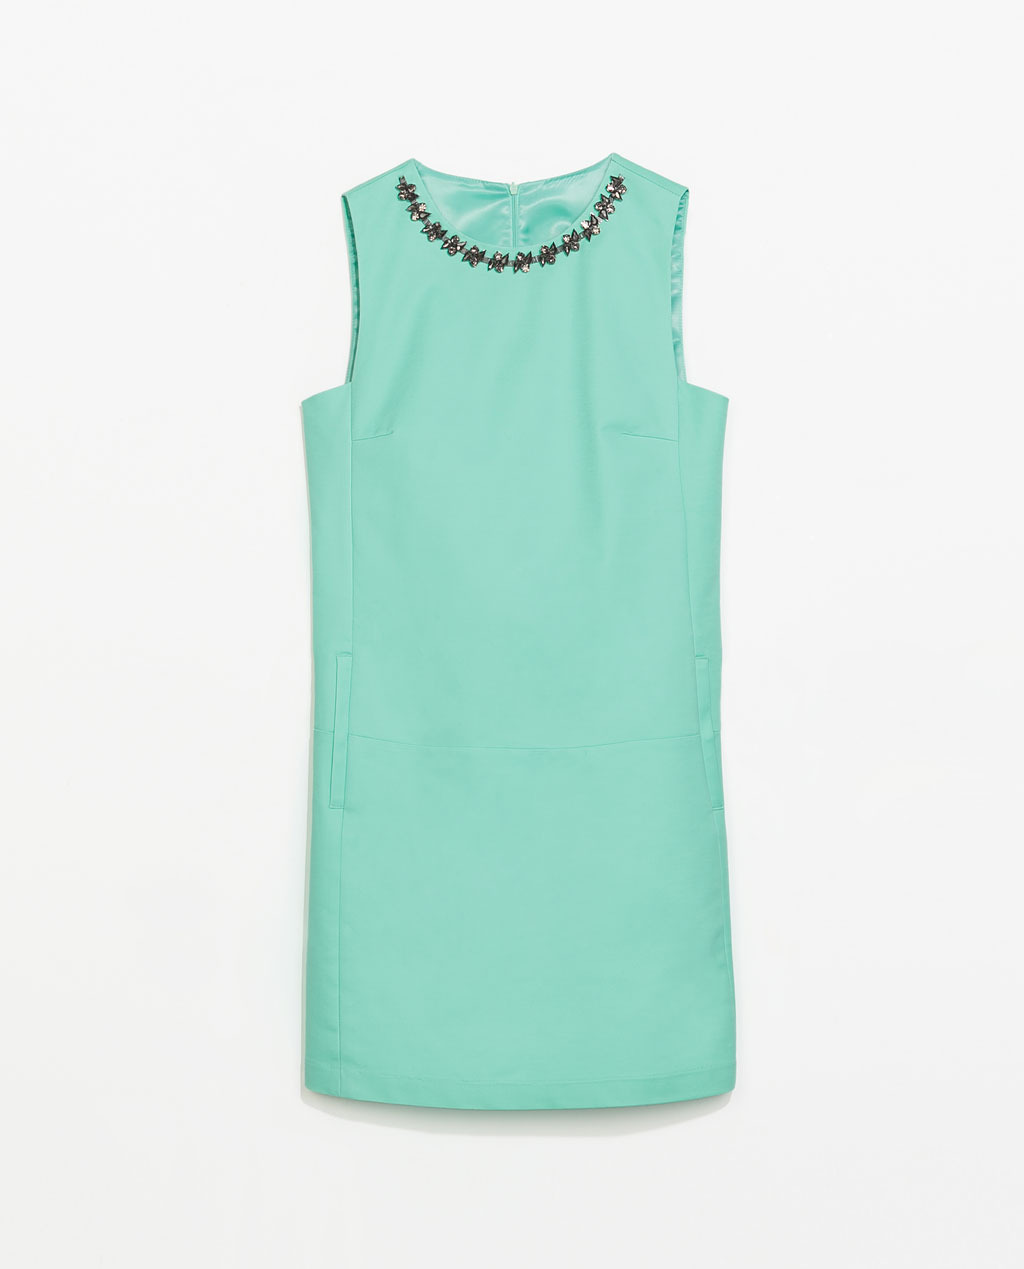 Dress With Embellished Neckline - style: shift; length: mini; pattern: plain; sleeve style: sleeveless; predominant colour: mint green; occasions: evening, occasion, holiday; fit: straight cut; fibres: cotton - stretch; neckline: crew; sleeve length: sleeveless; texture group: cotton feel fabrics; pattern type: fabric; embellishment: jewels/stone; trends: sorbet shades, summer sparkle; secondary colour: pewter; season: s/s 2014